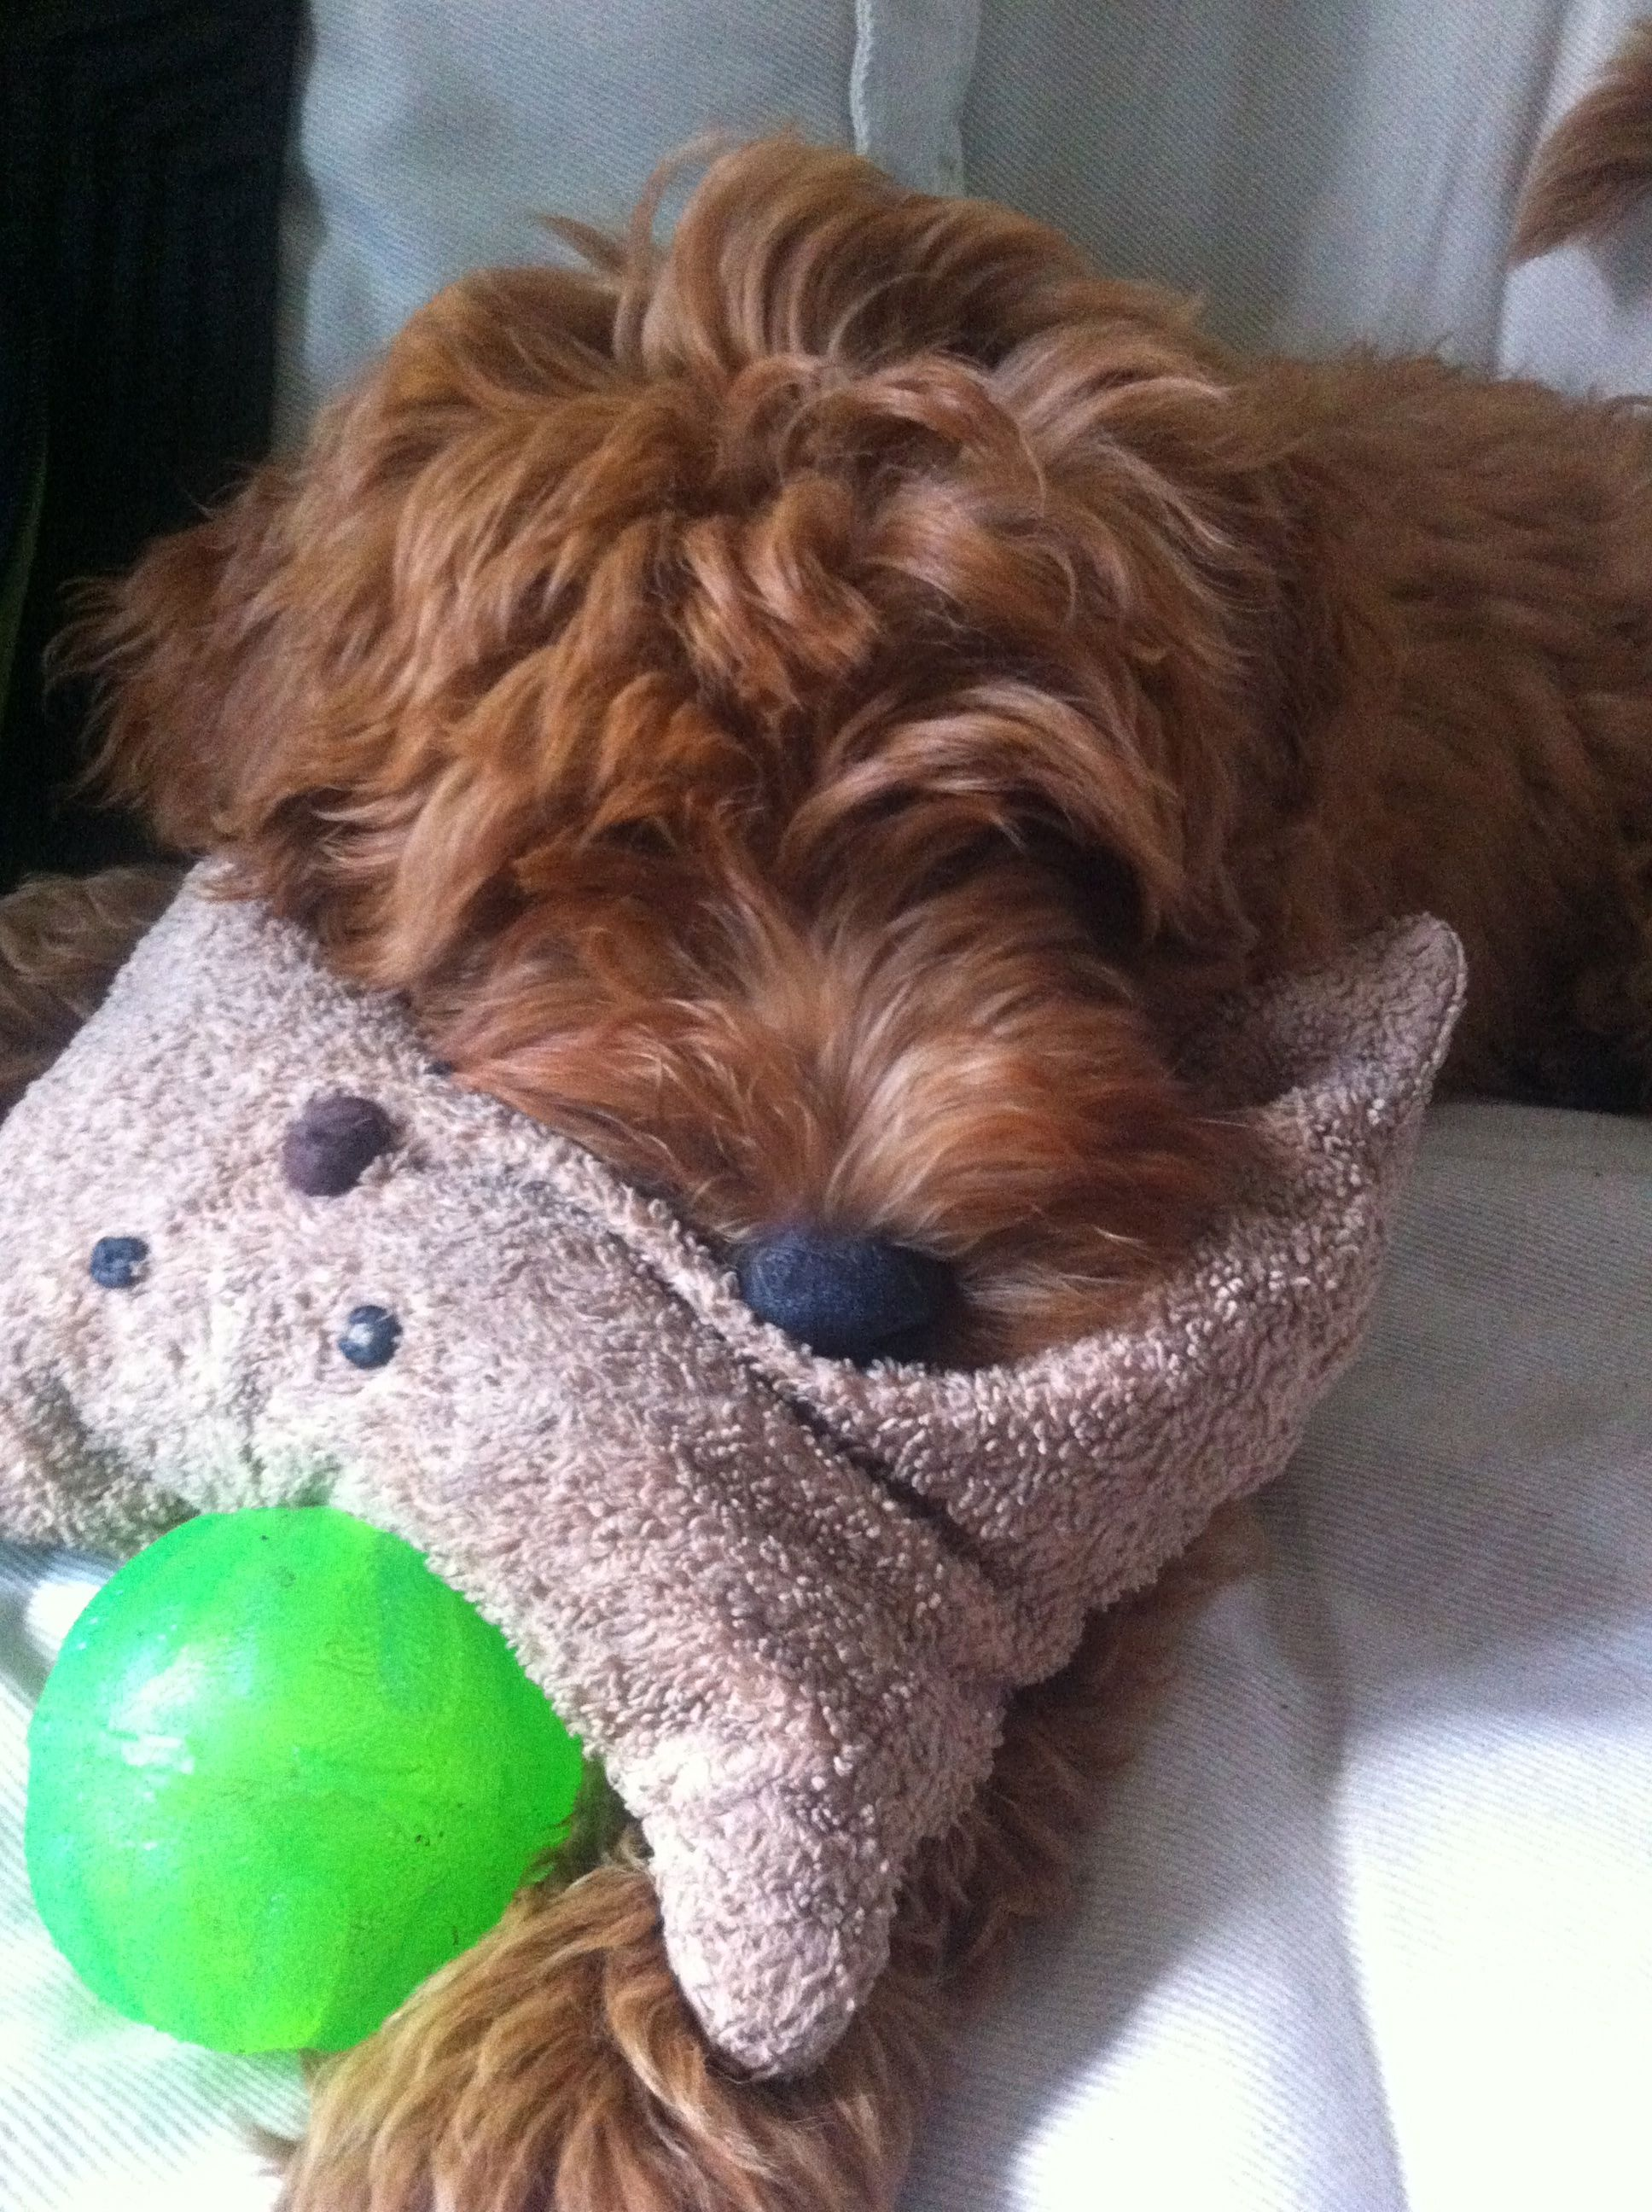 Me and my pillow goldendoodle pup